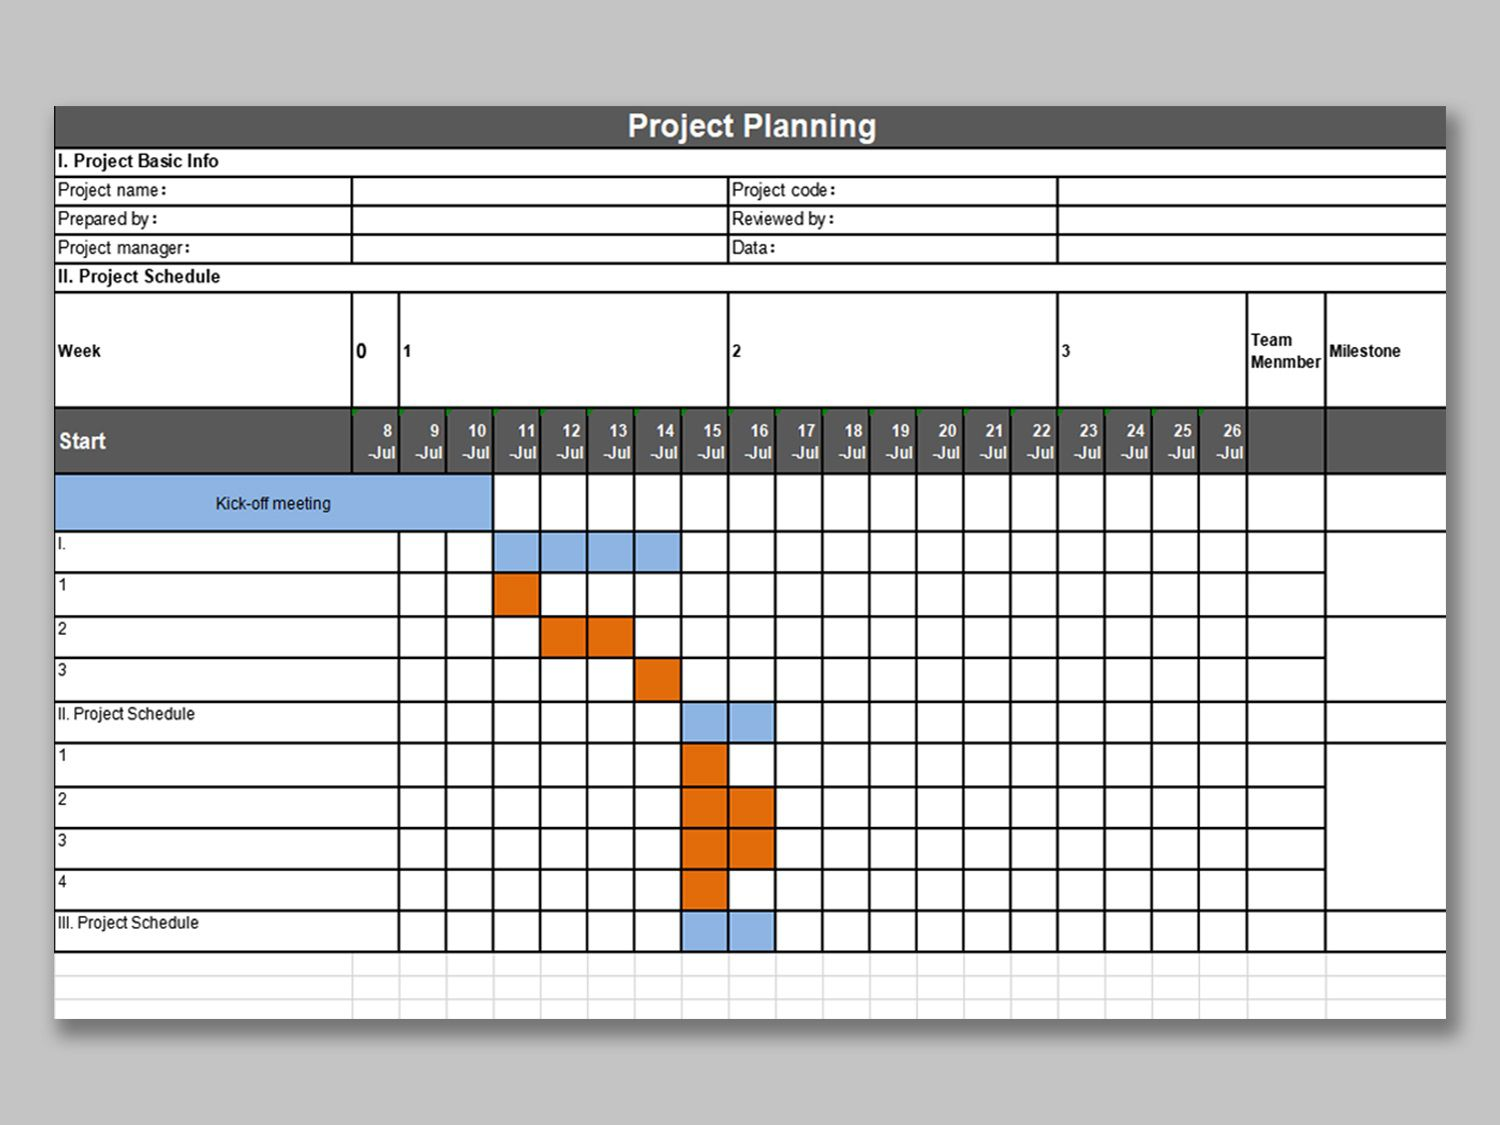 001 Impressive Project Management Plan Template Free Inspiration  Word Simple Excel DownloadFull